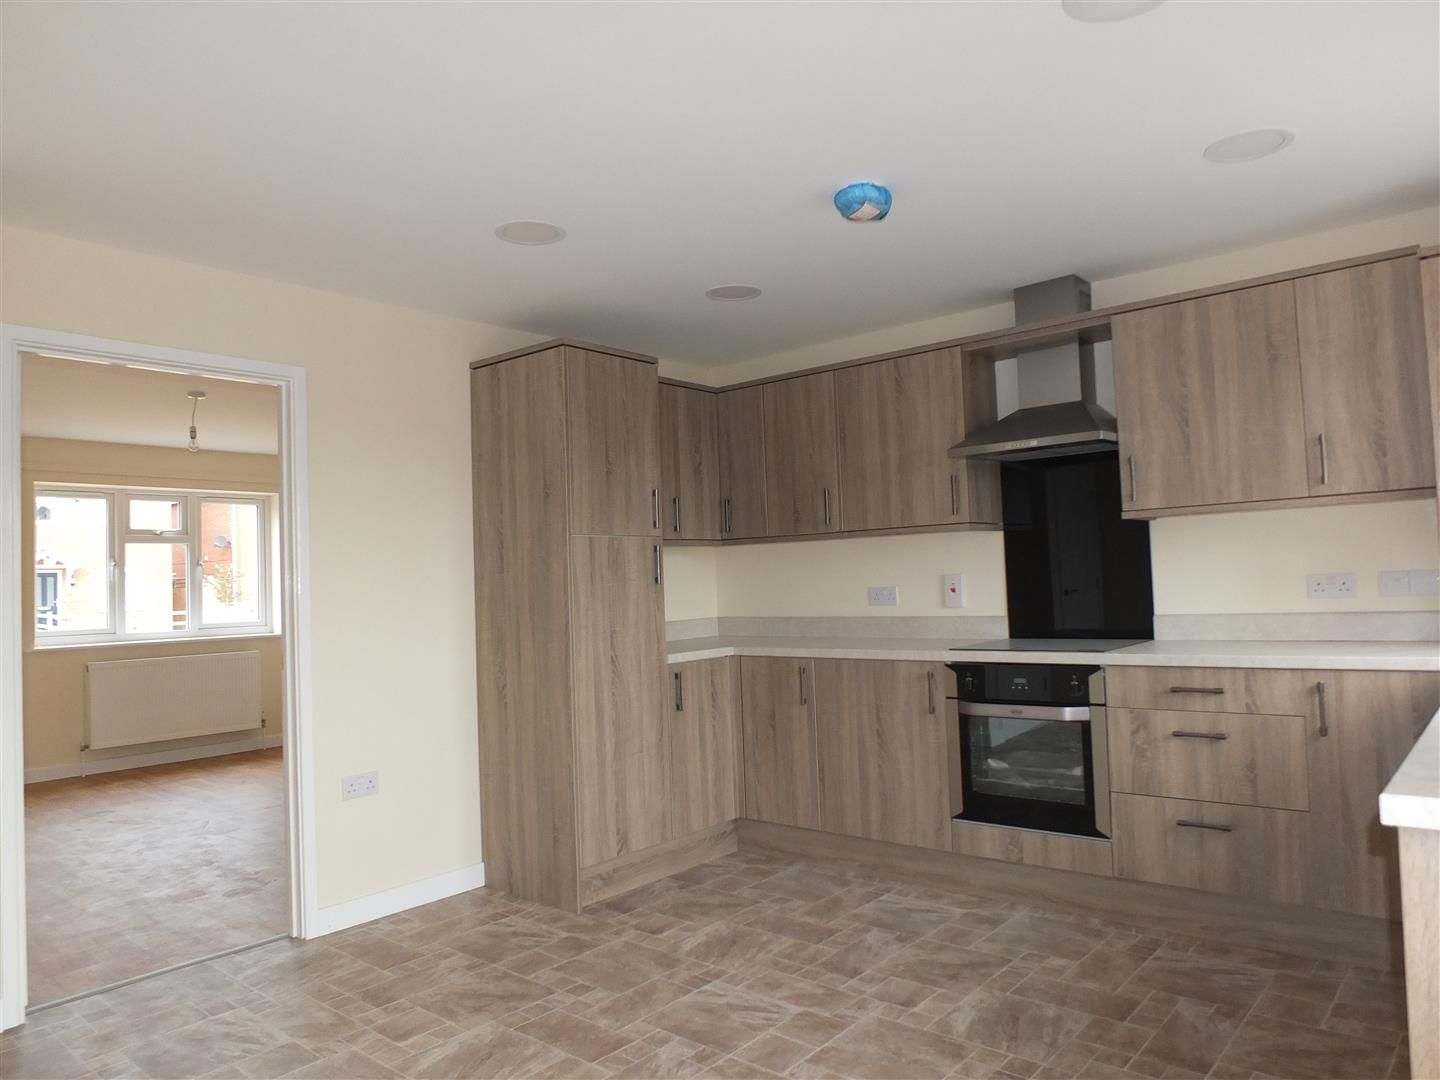 3 bed house to rent in Little London, Long Sutton  - Property Image 7